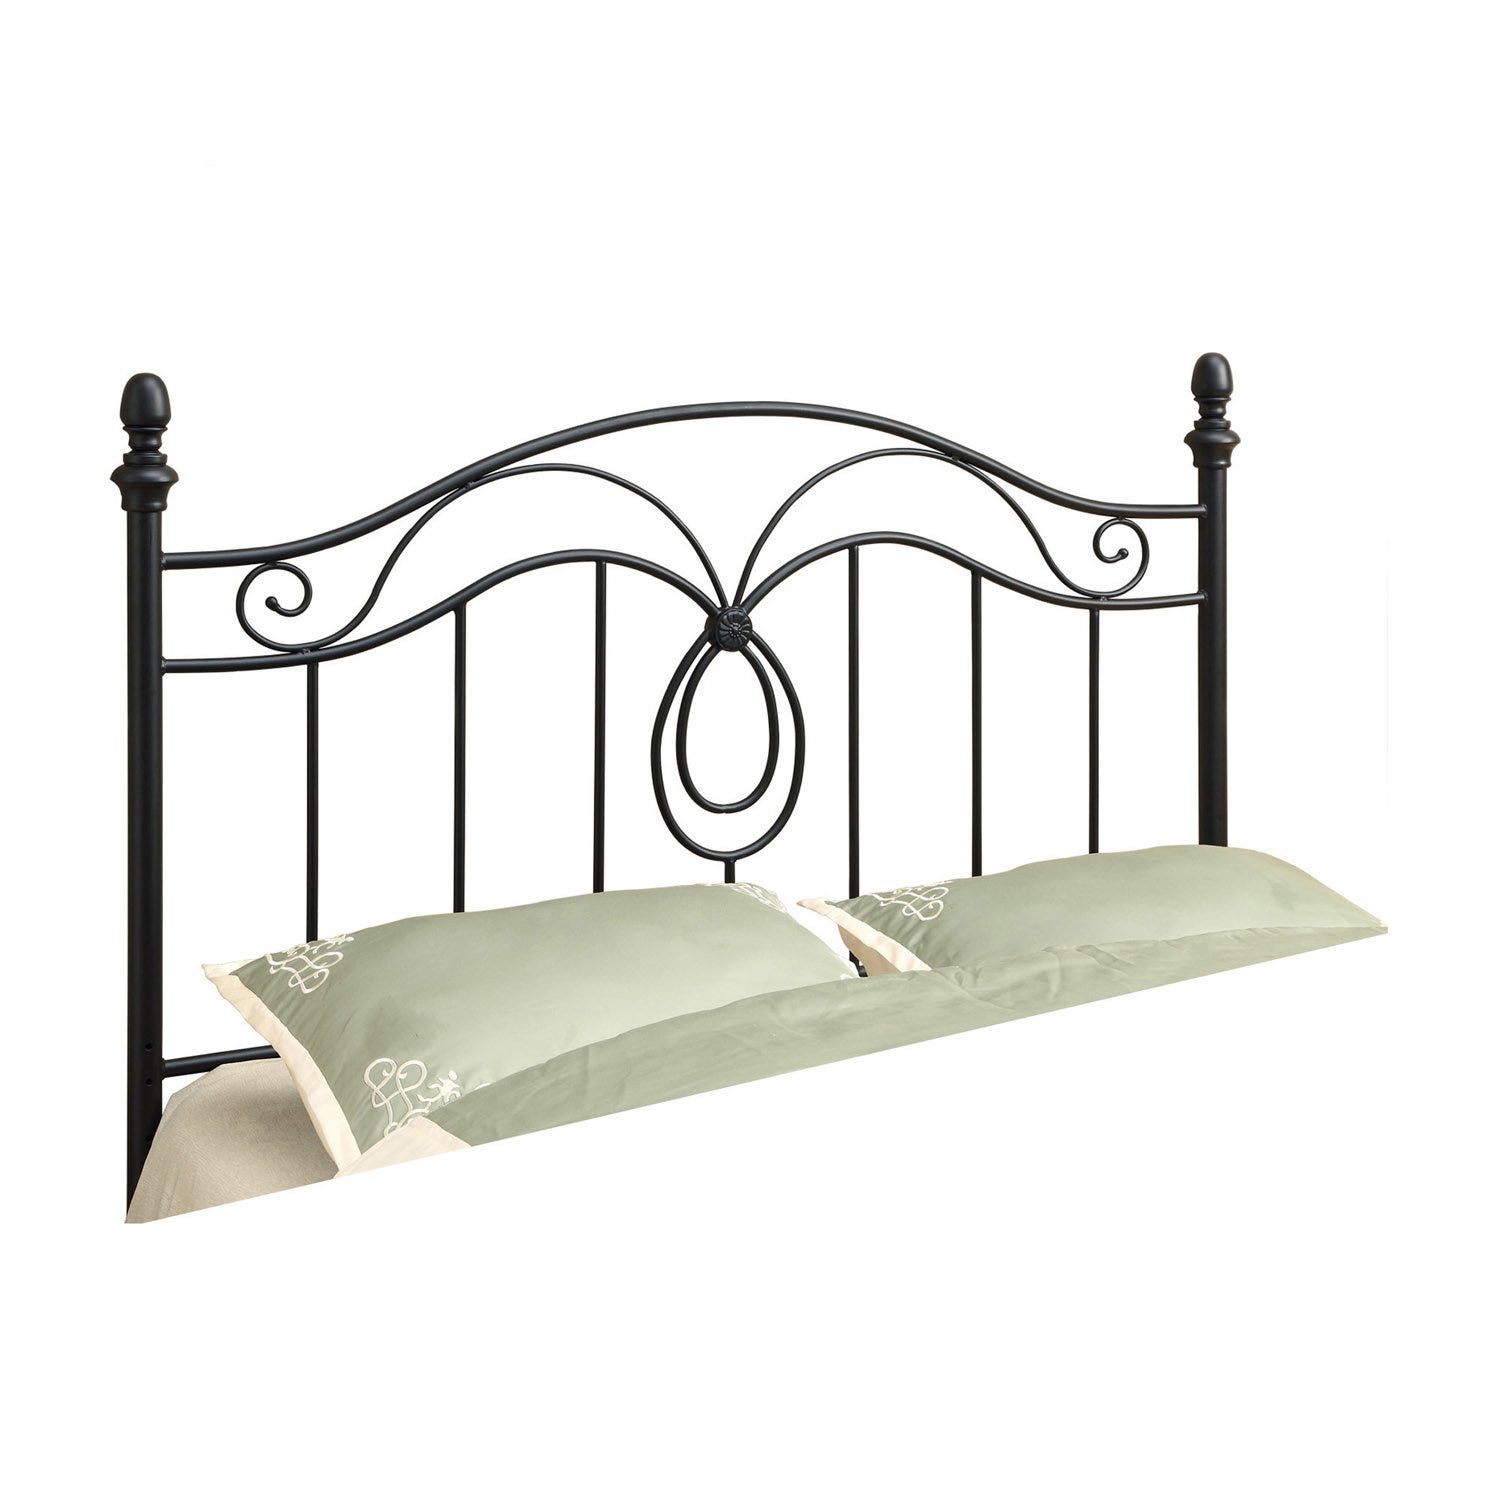 Bed Queen Or Full Size Black Headboard Or Footboard Rd Furniture